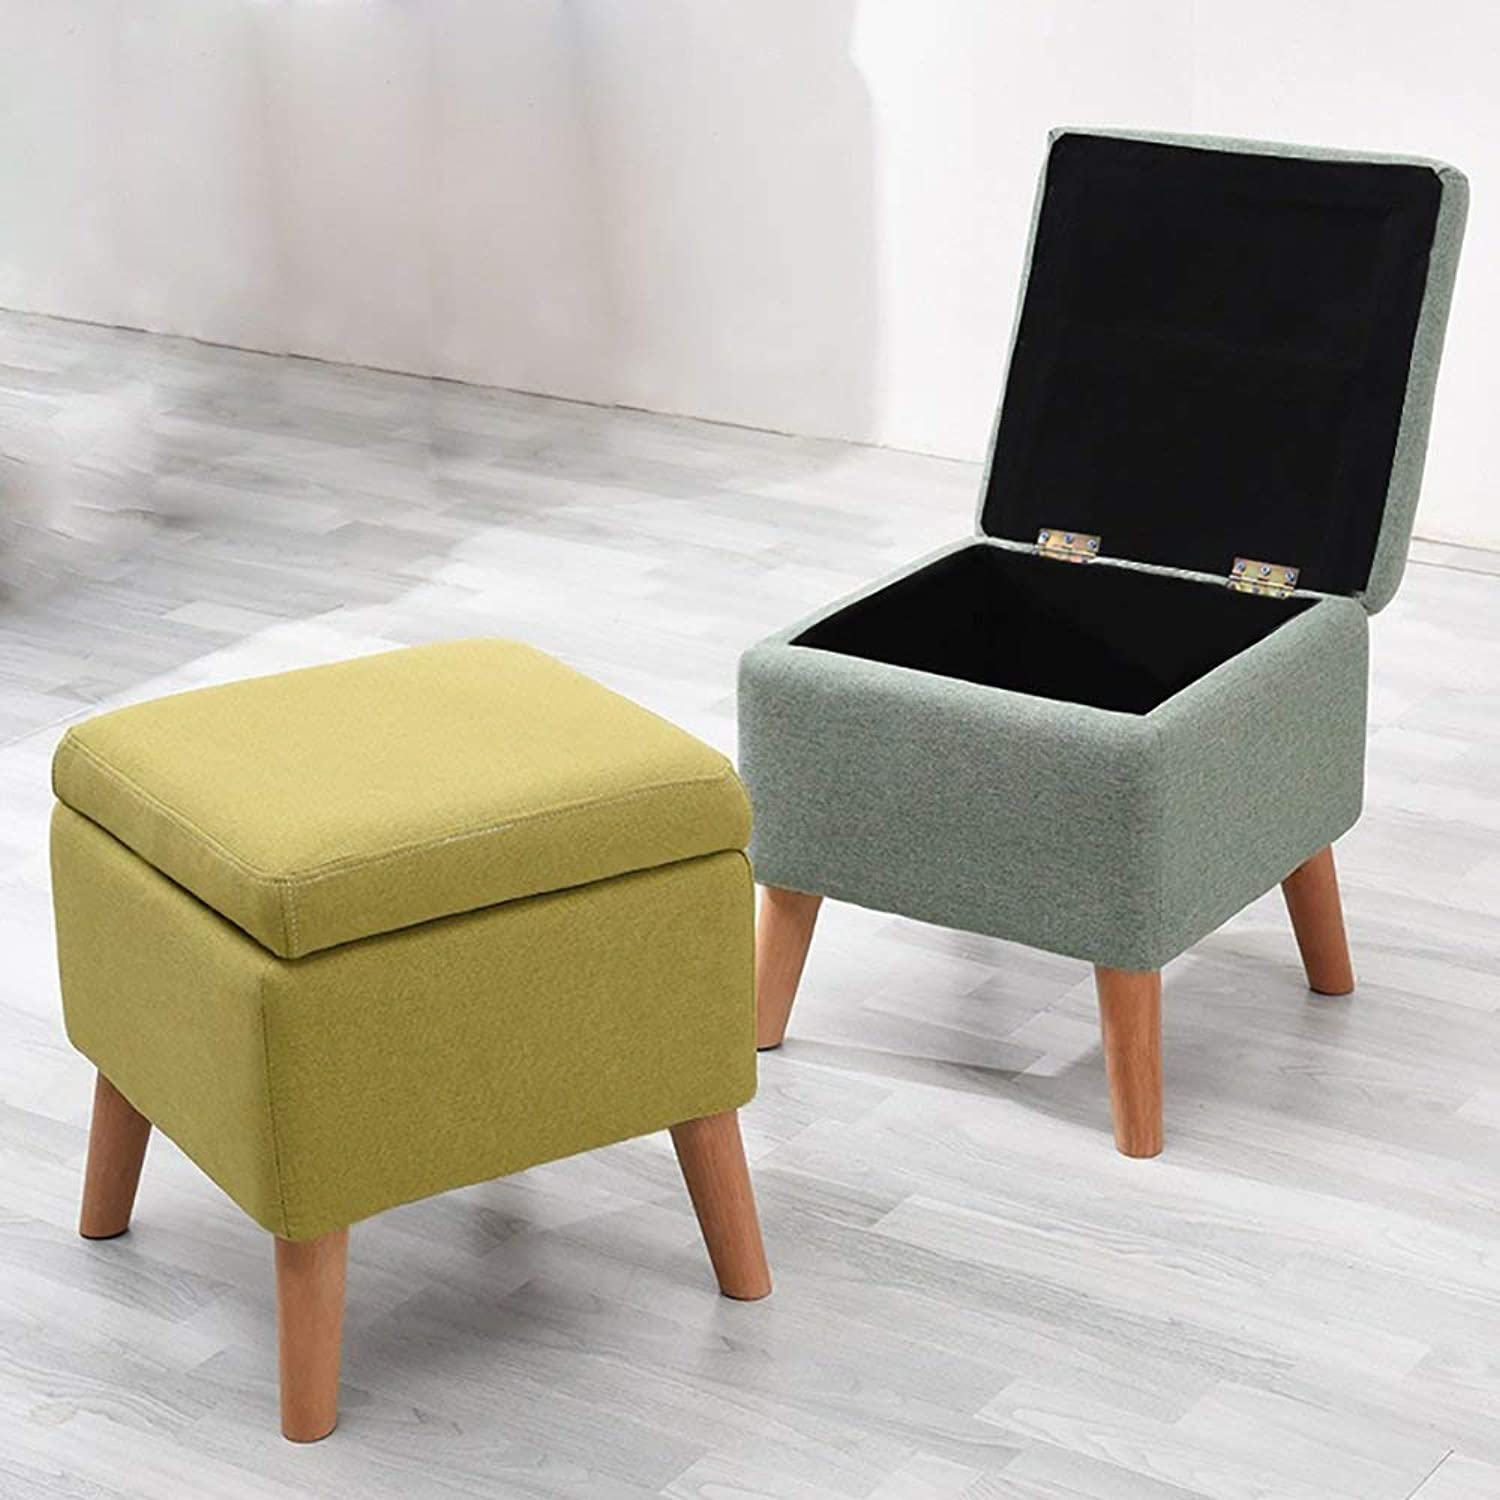 JZX Storage shoes Bench, Living Room Fabric Sofa Footstool